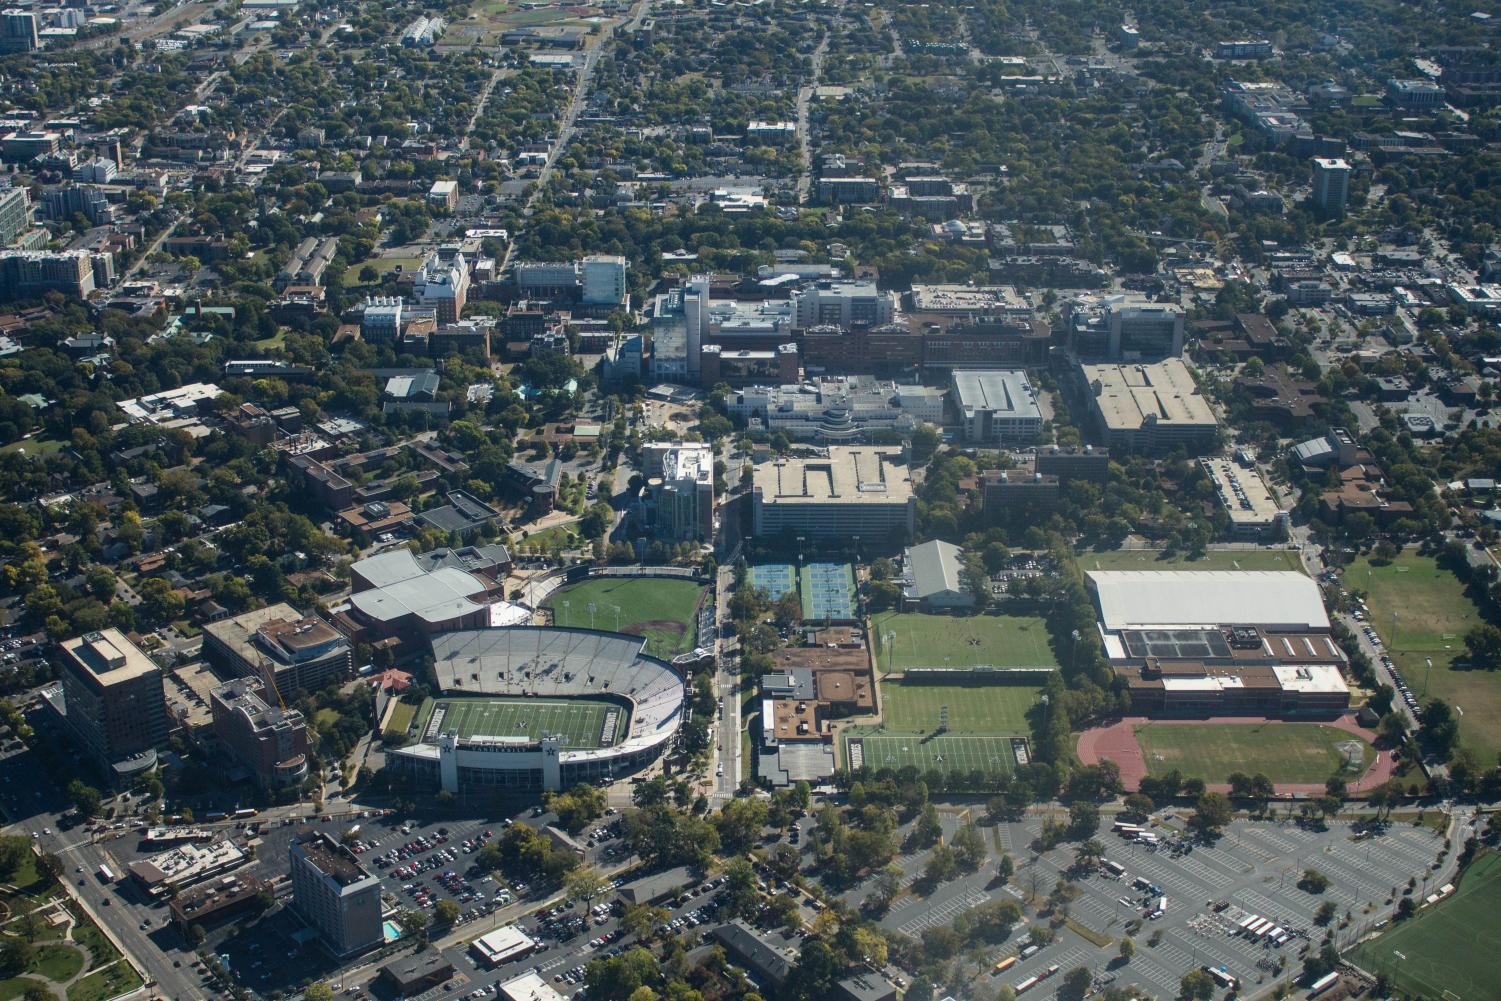 Vanderbilt's campus from an aerial view. Photo by Emily Gonçalves.